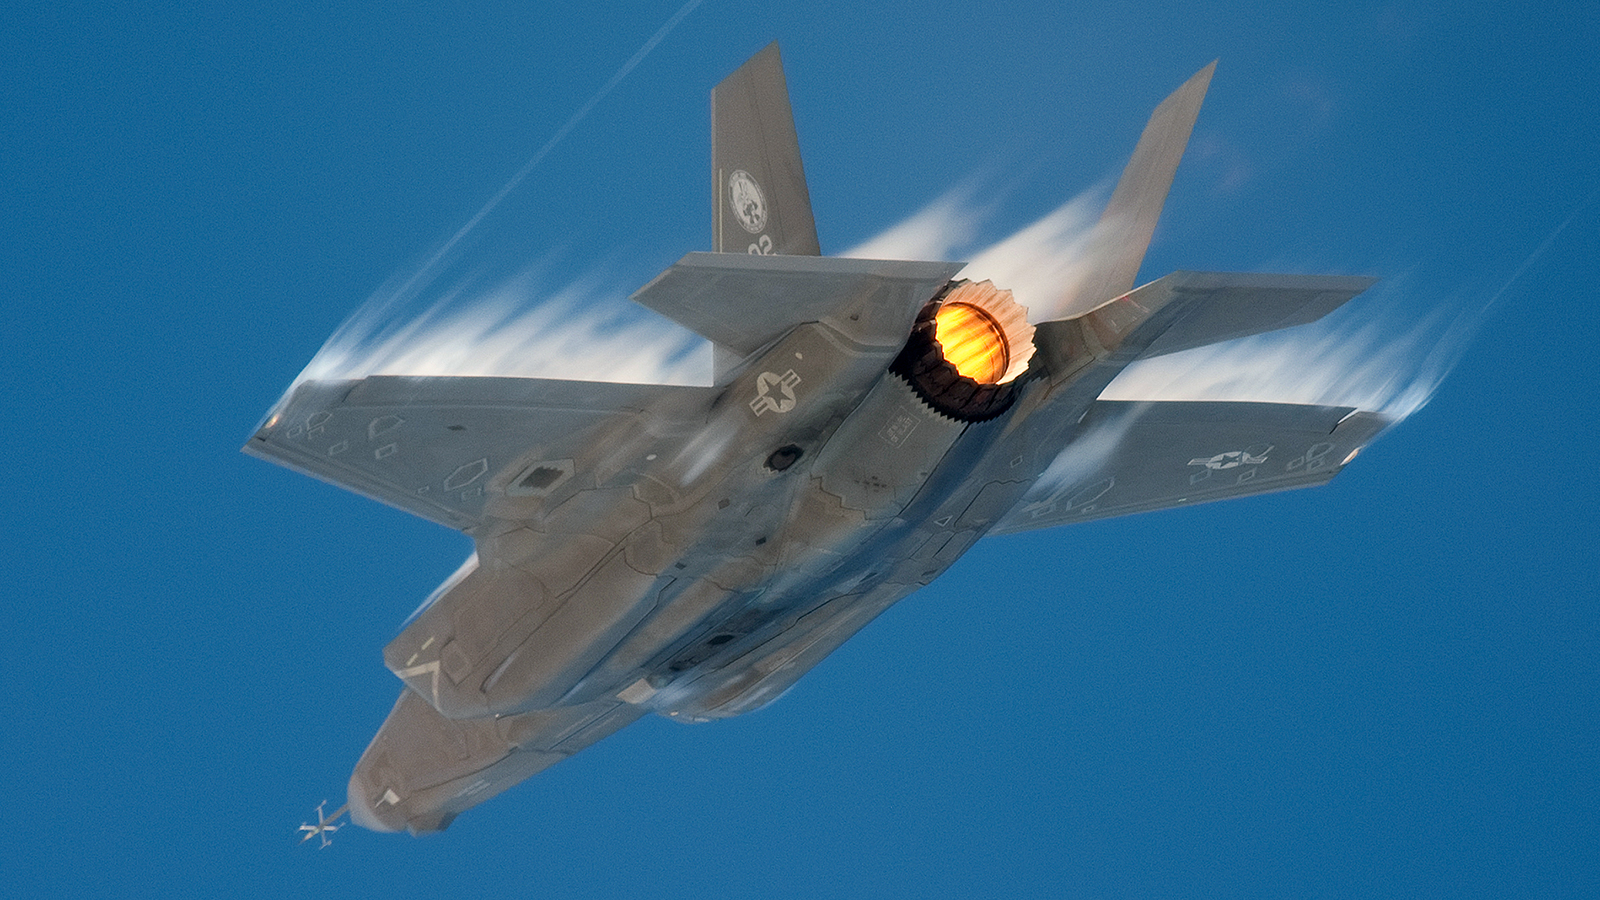 Click here to read This F-35 On Afterburner Is Your Airporn Porn of the Day and My New Desktop Background